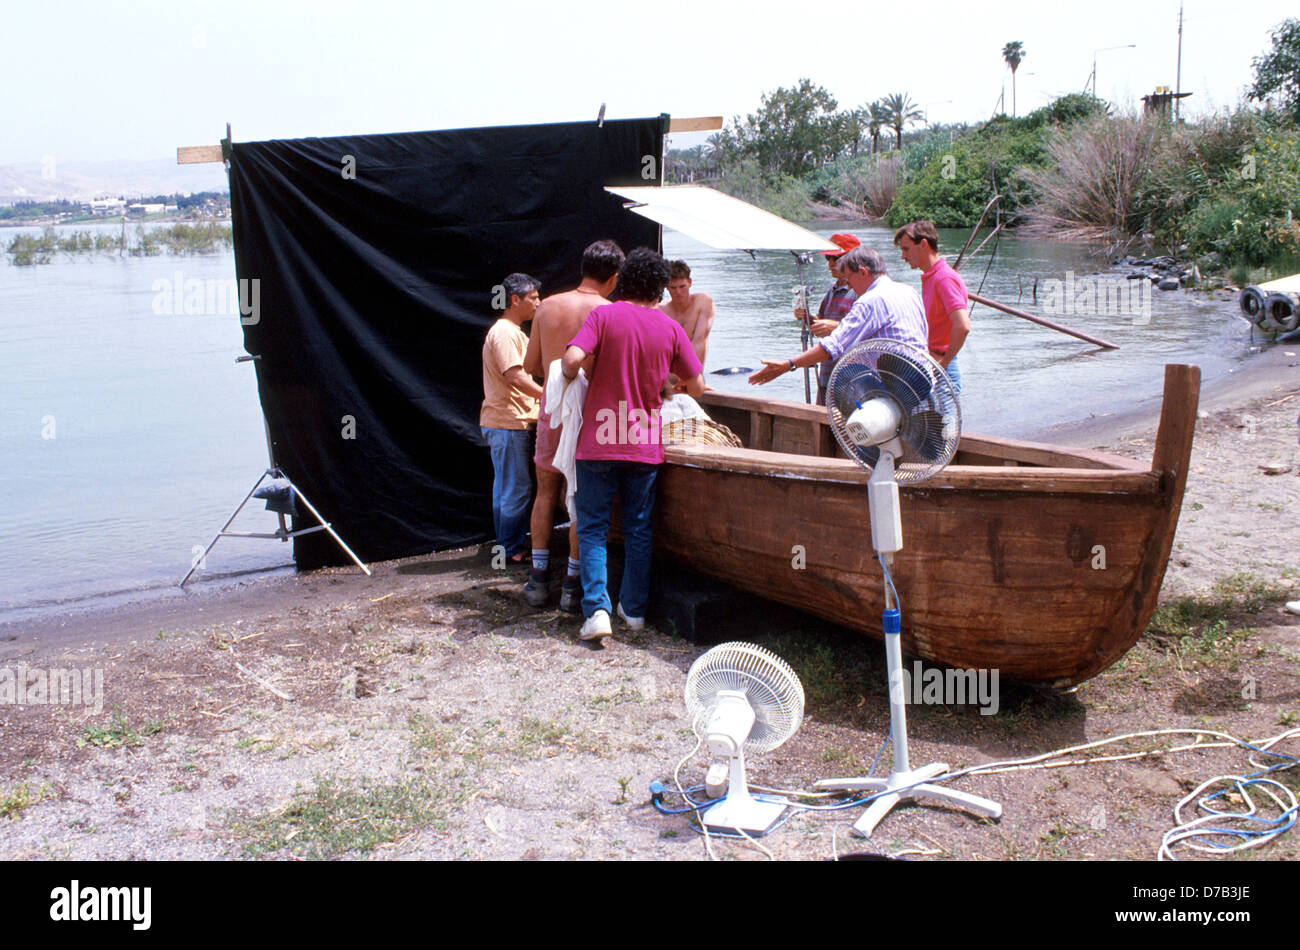 production of a movie at the banks of sea of galilee - Stock Image